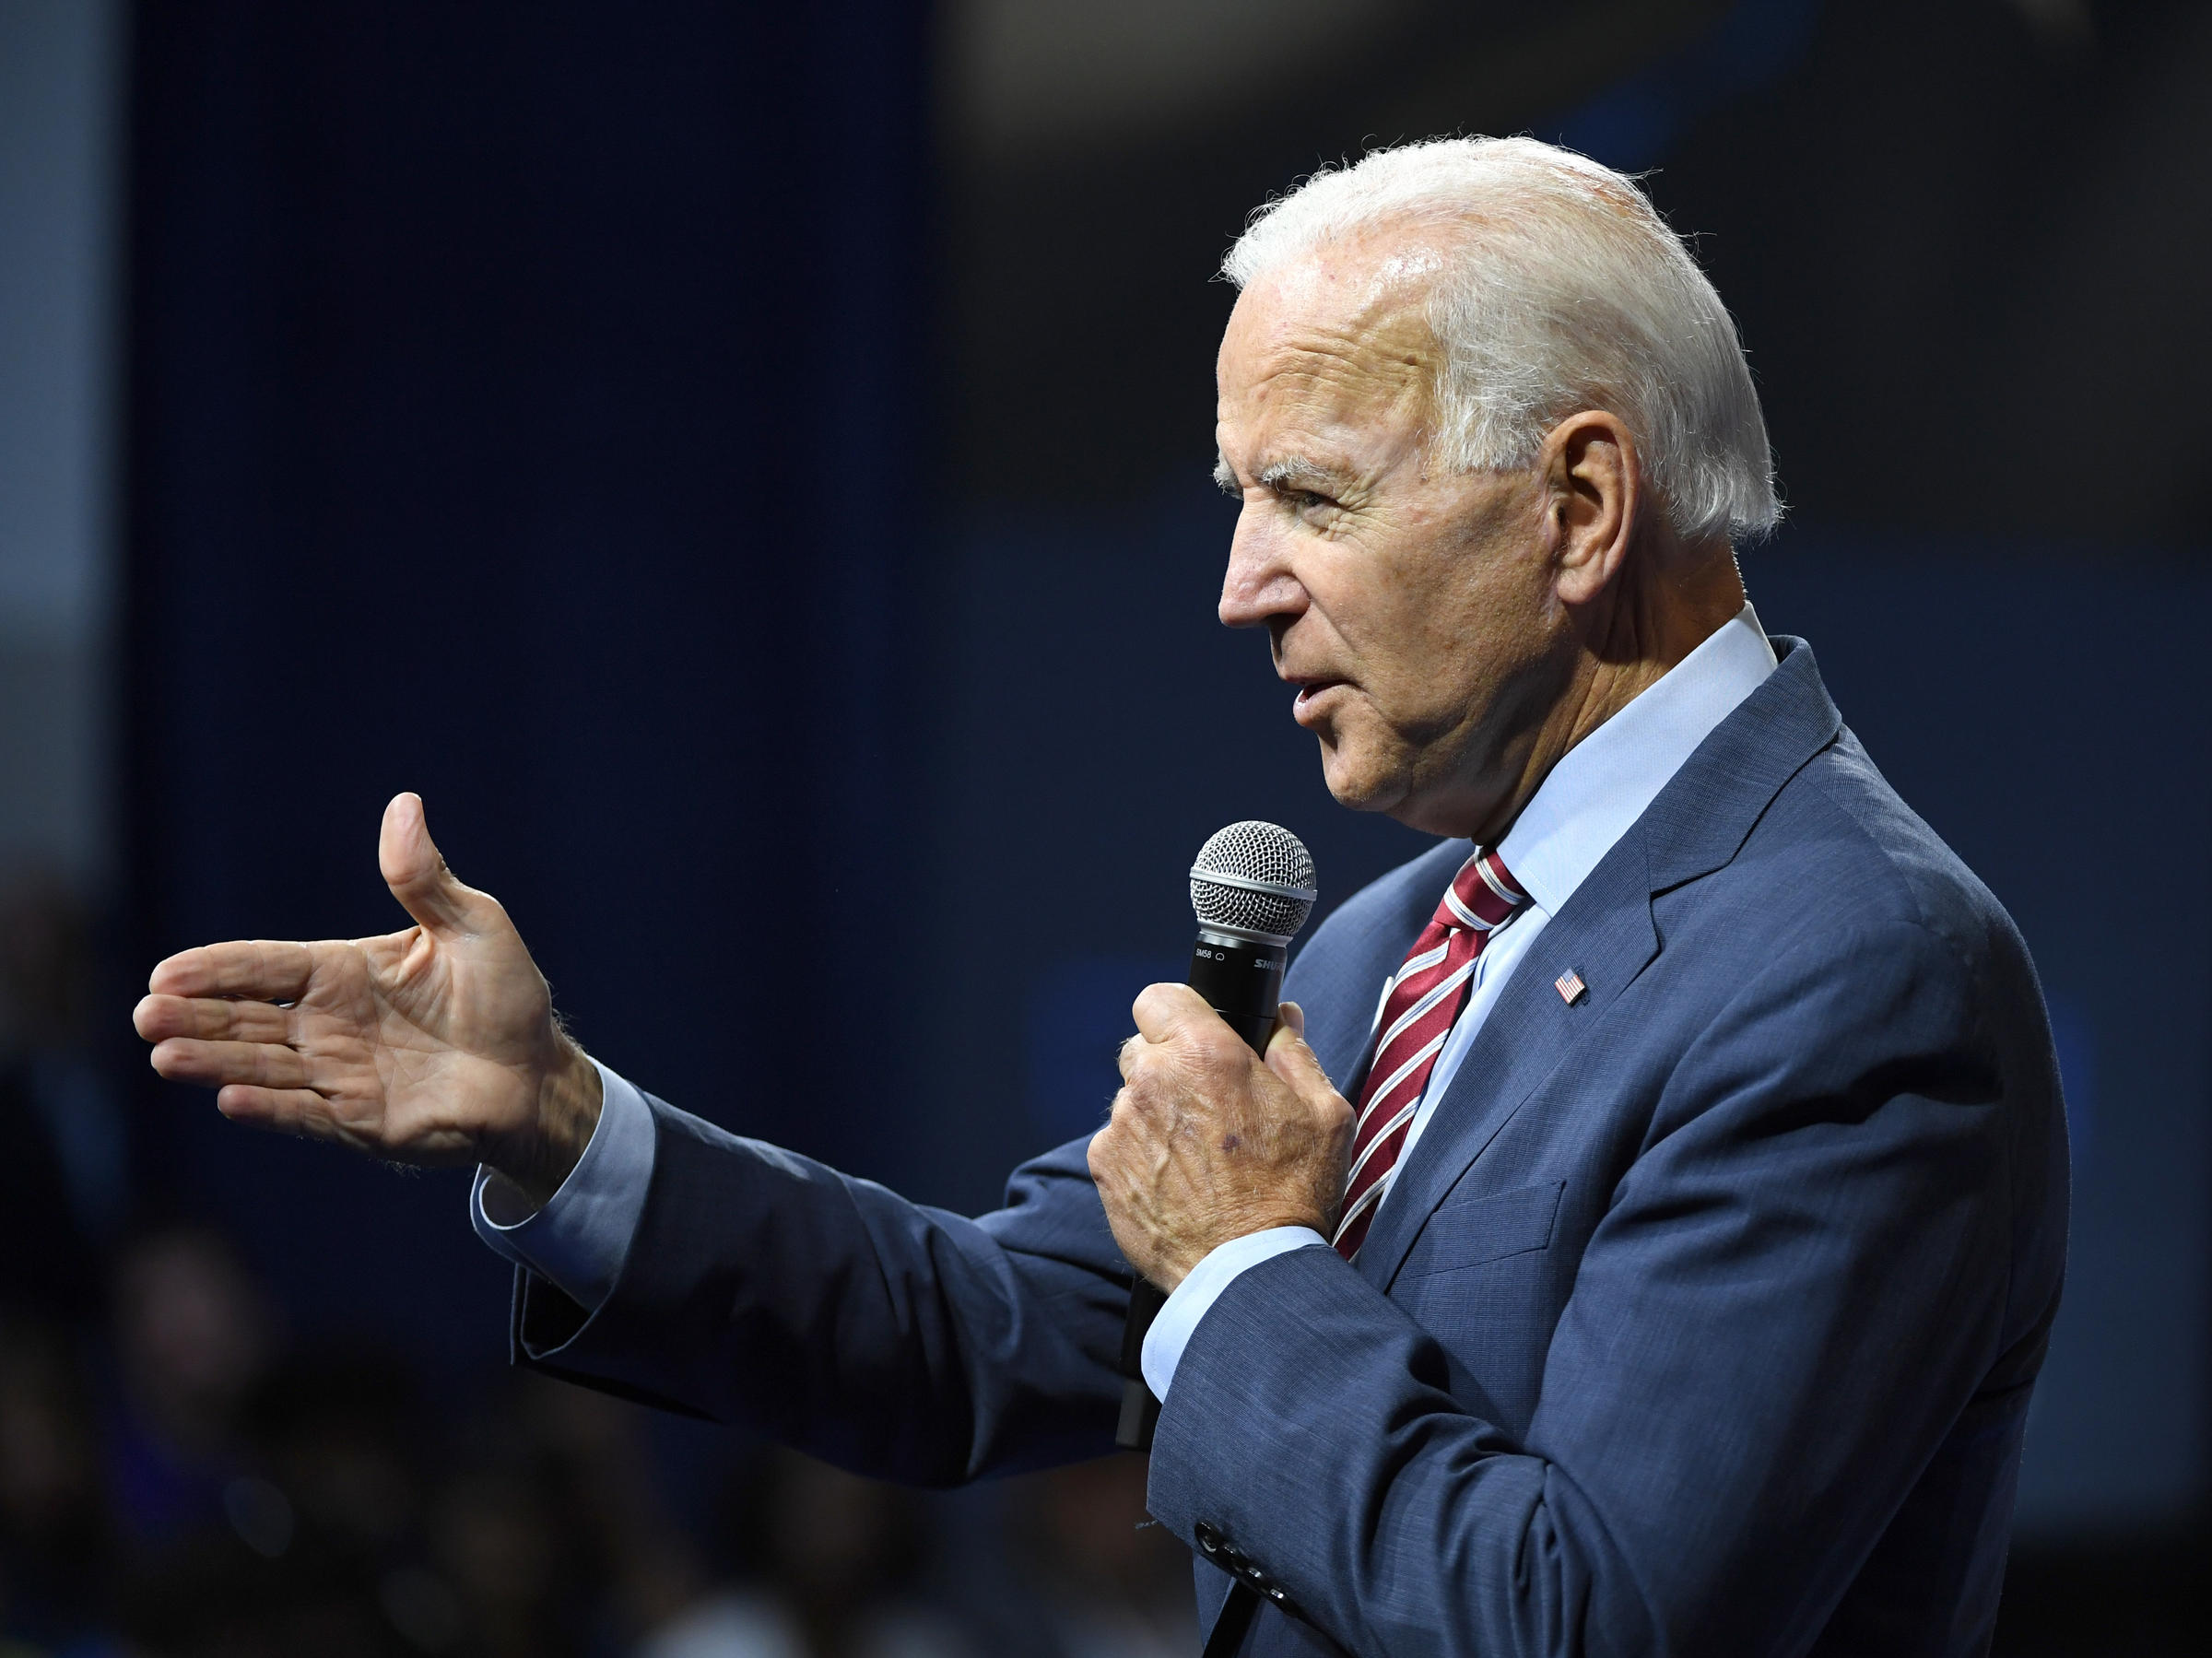 Ukraine Says Reviewing Cases on Company That Hired Biden's Son